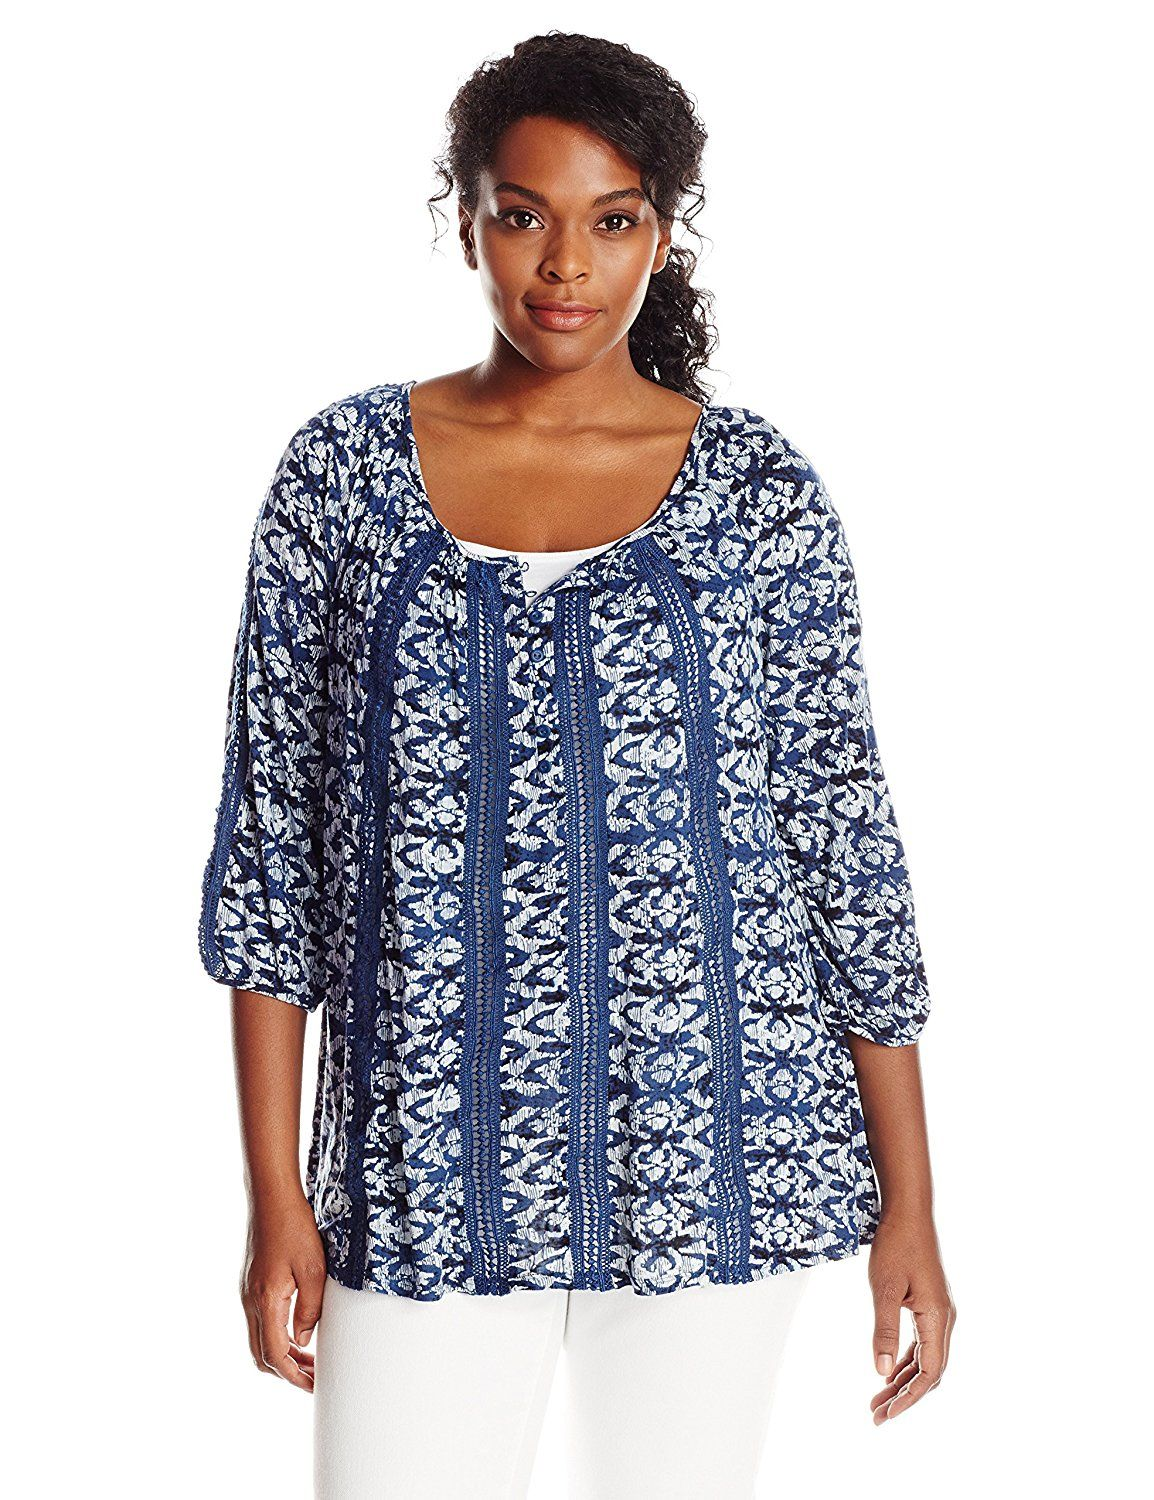 2LUV Womens 3//4 Sleeve A-Line Tunic W//Lace Trim